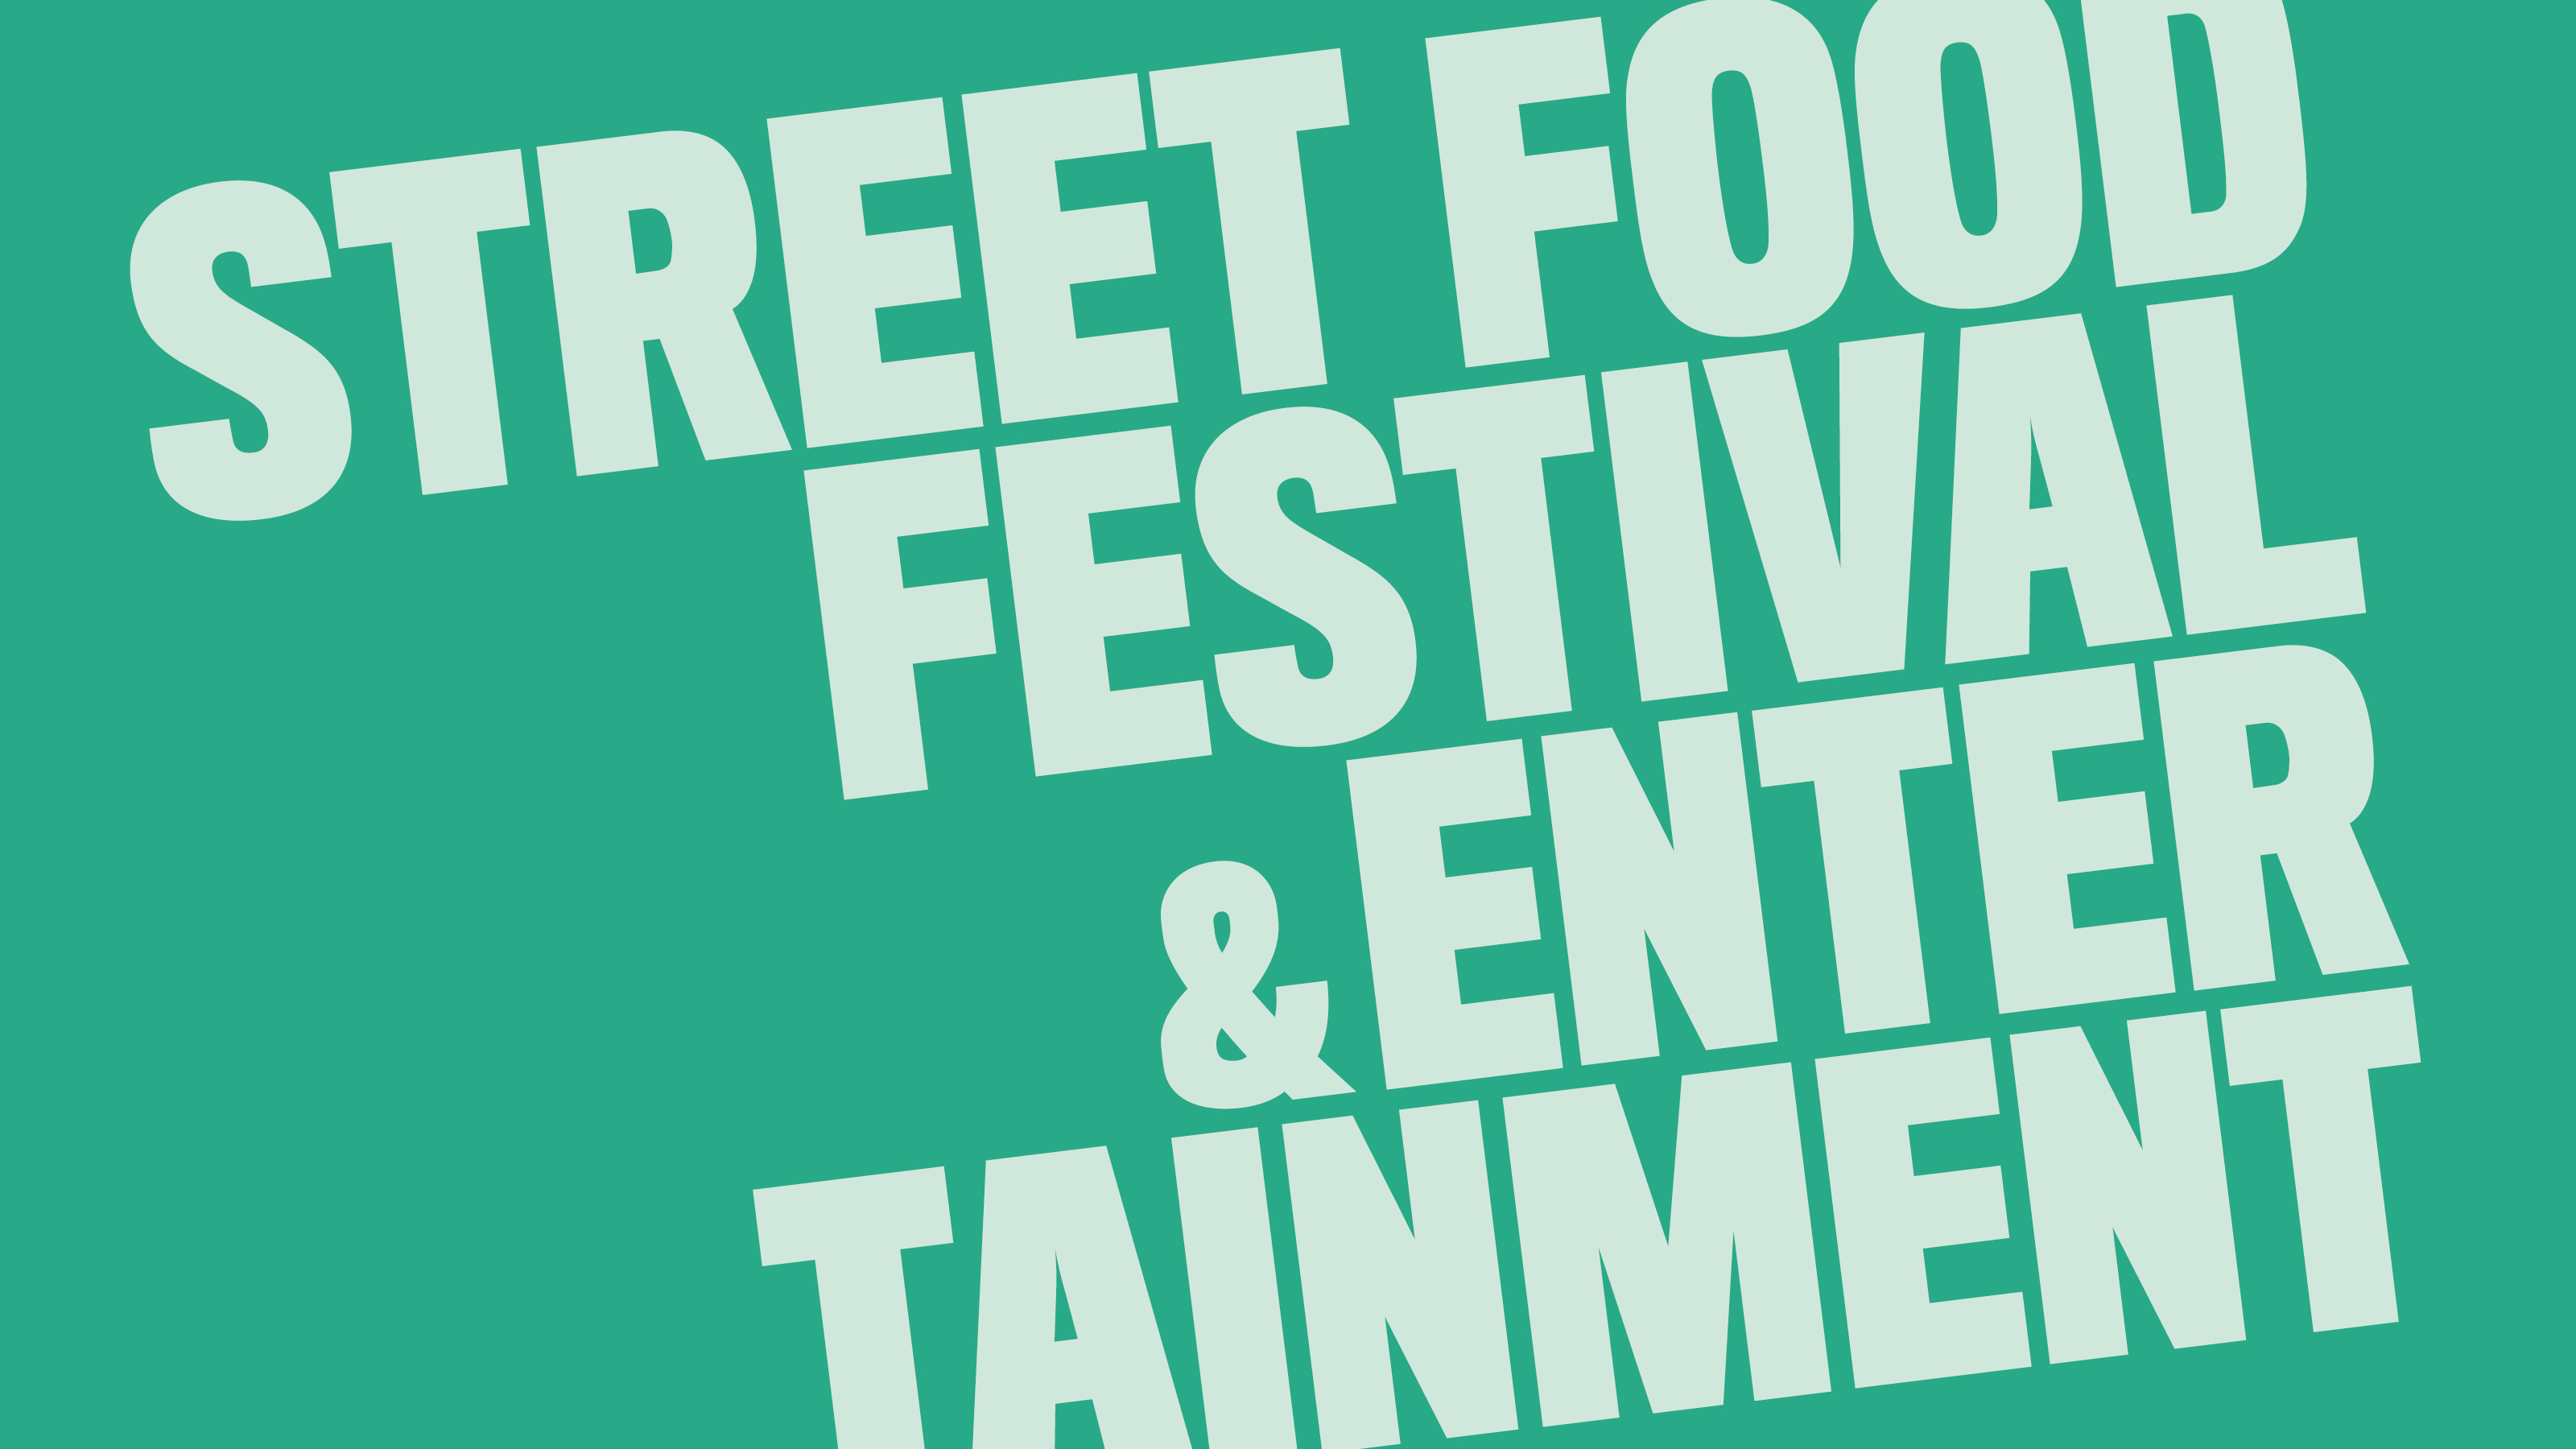 Street Food Festival & Entertainment